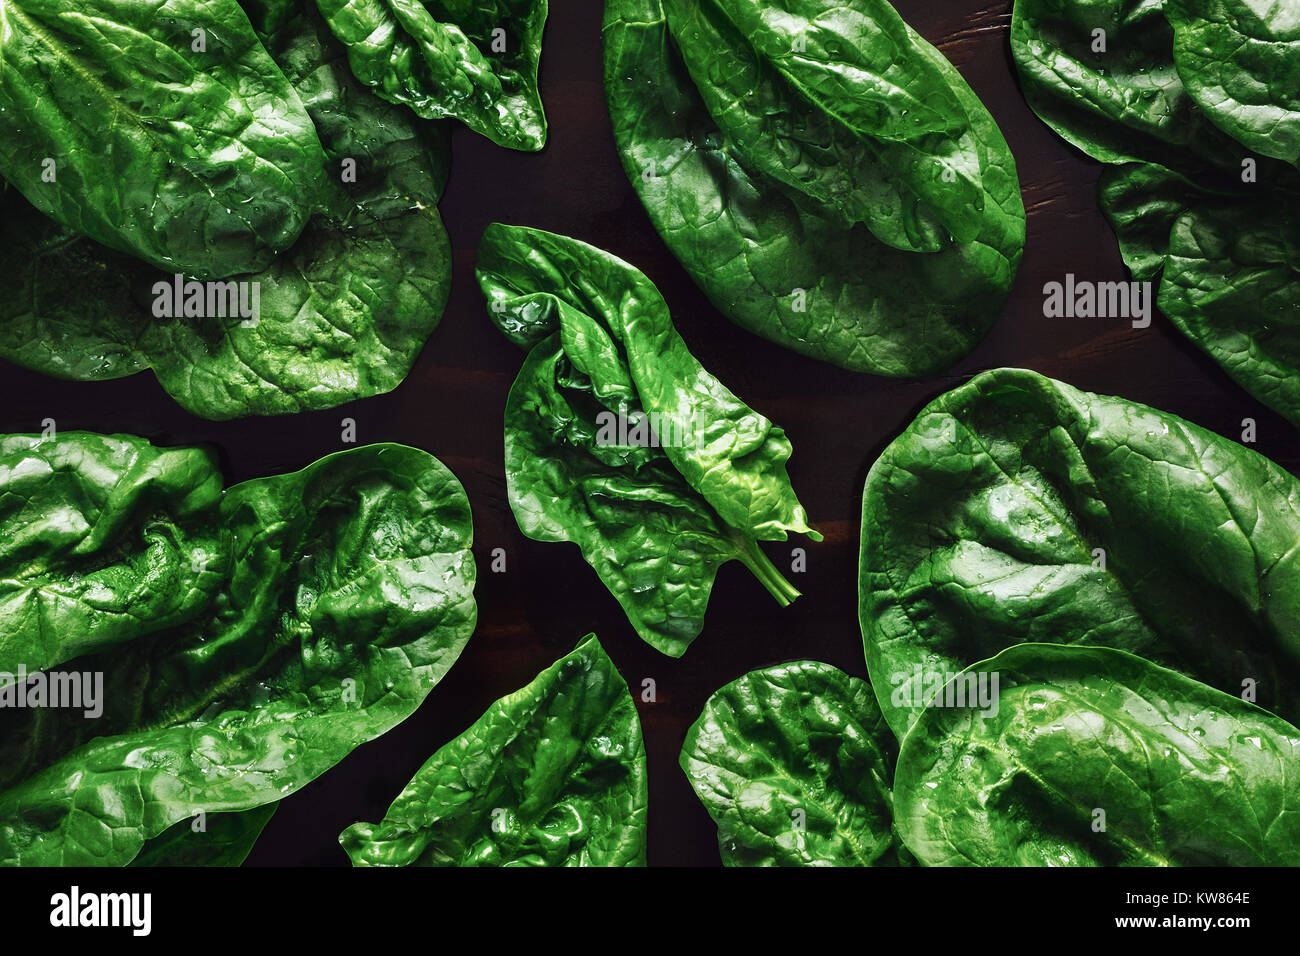 Spinach Leaves on Dark Table - Stock Image